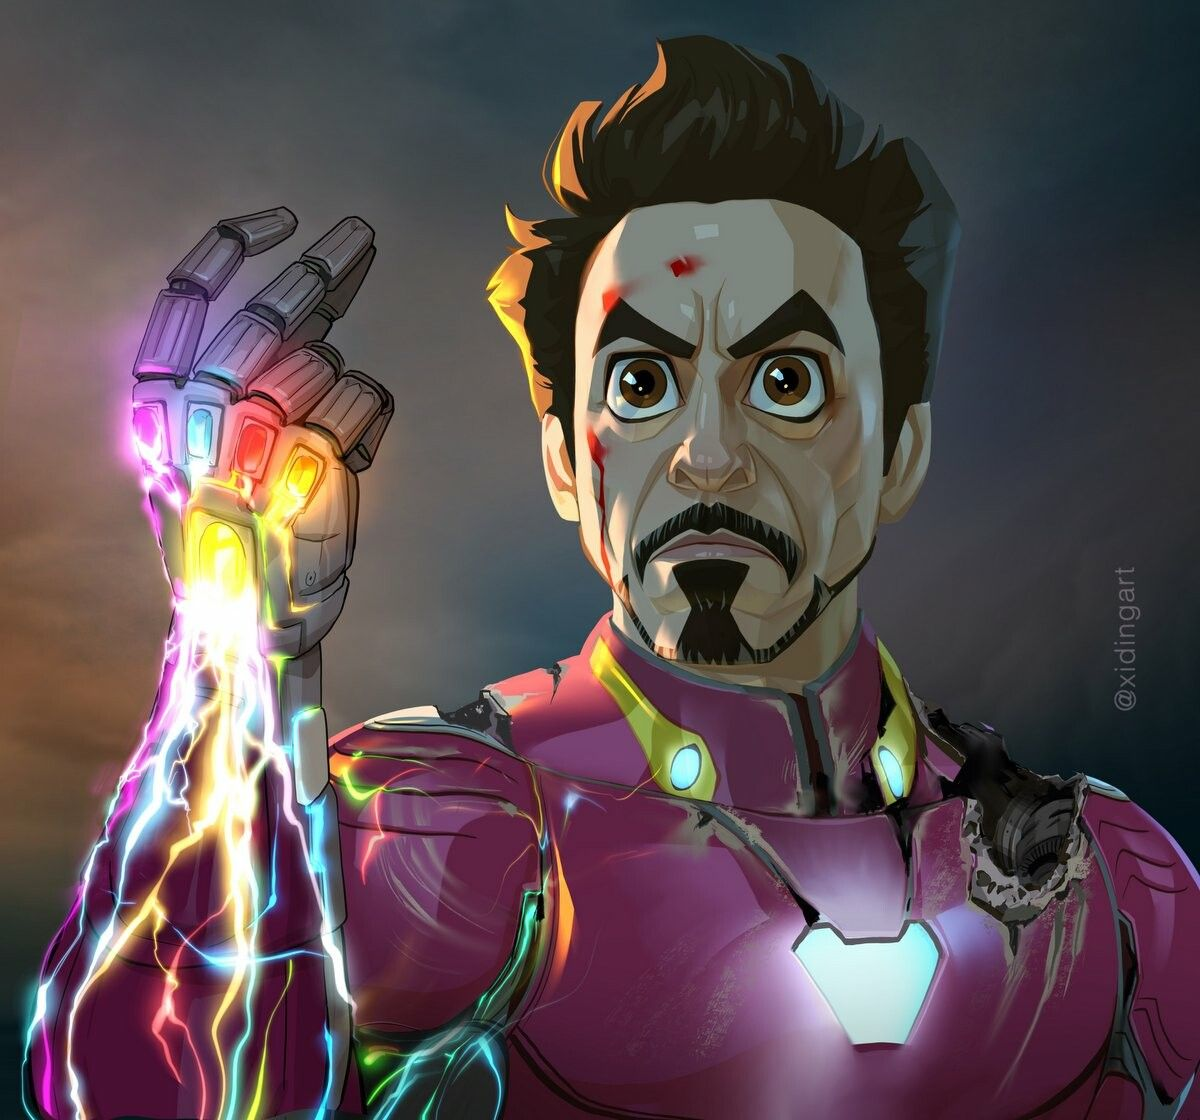 Iron man stylised endgame spoilers by xi ding